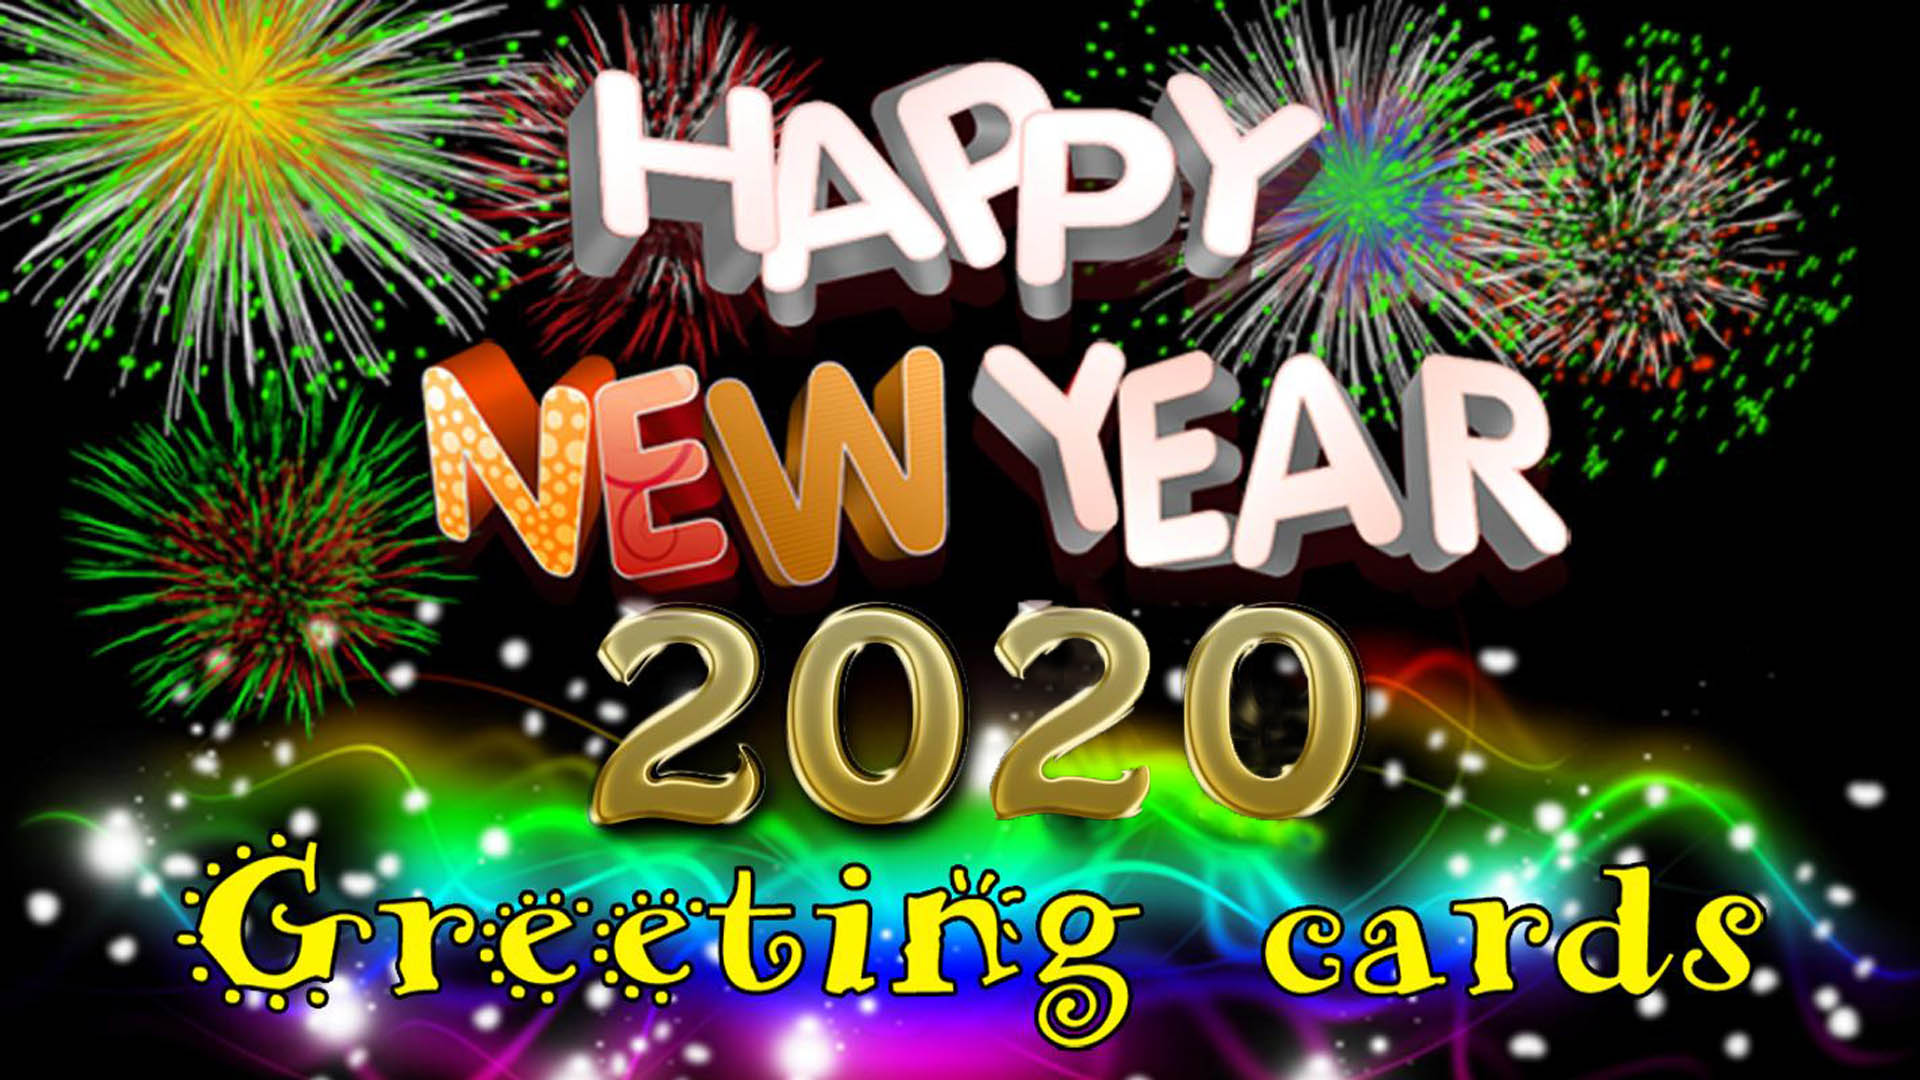 Happy New Year 2020 Greetings Cards Desktop Wallpaper Hd For 1920x1080